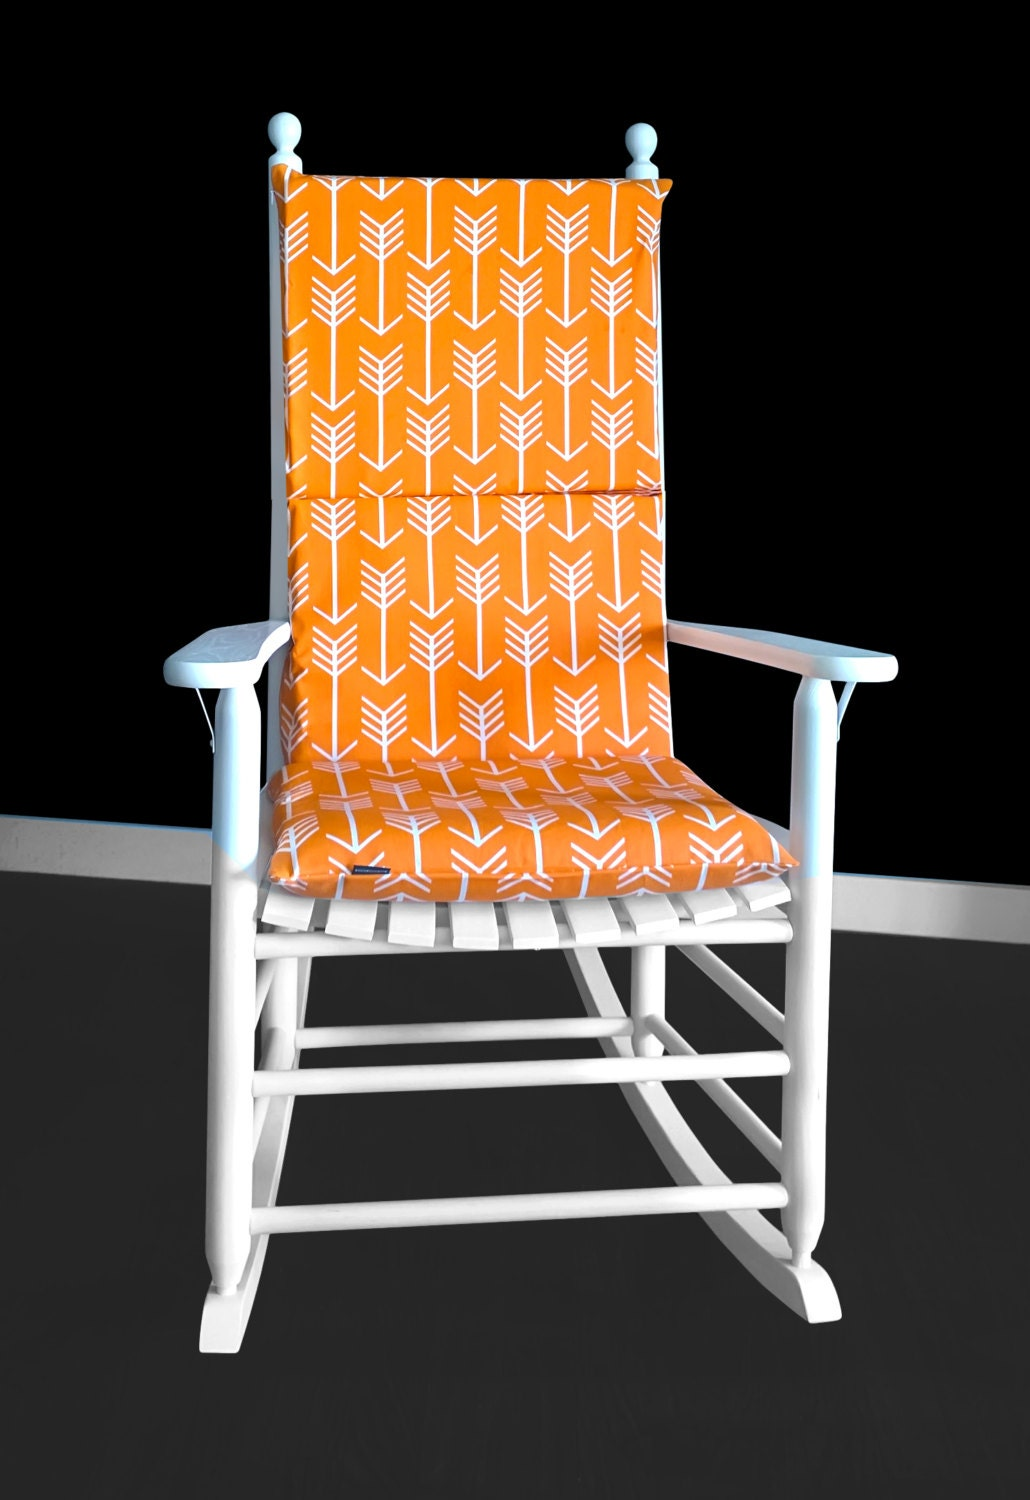 Foam Inserts And Covers For Rocking Chair Arrow Print Rocking